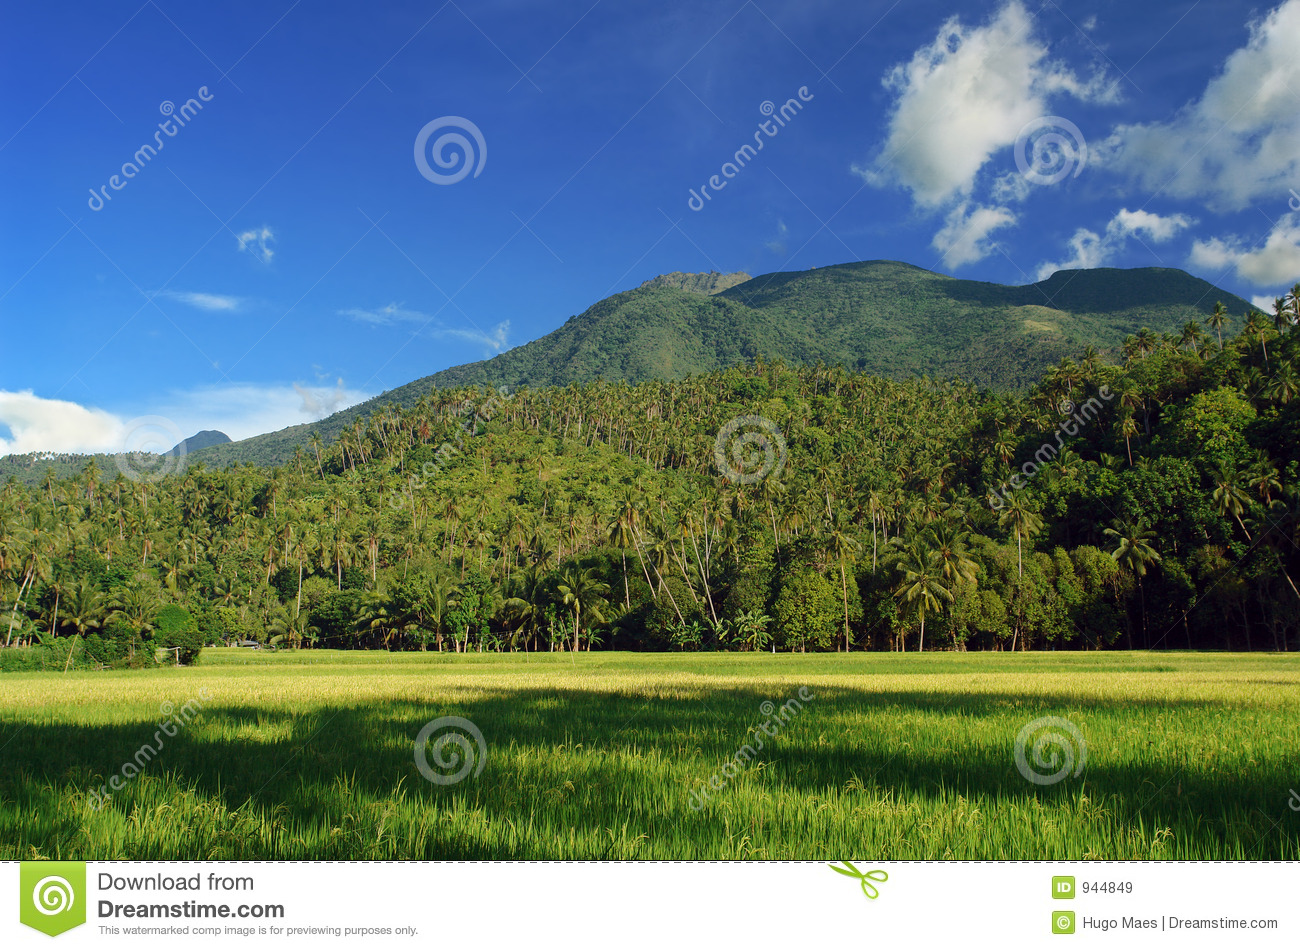 Asian landscape with mountains and rice field.